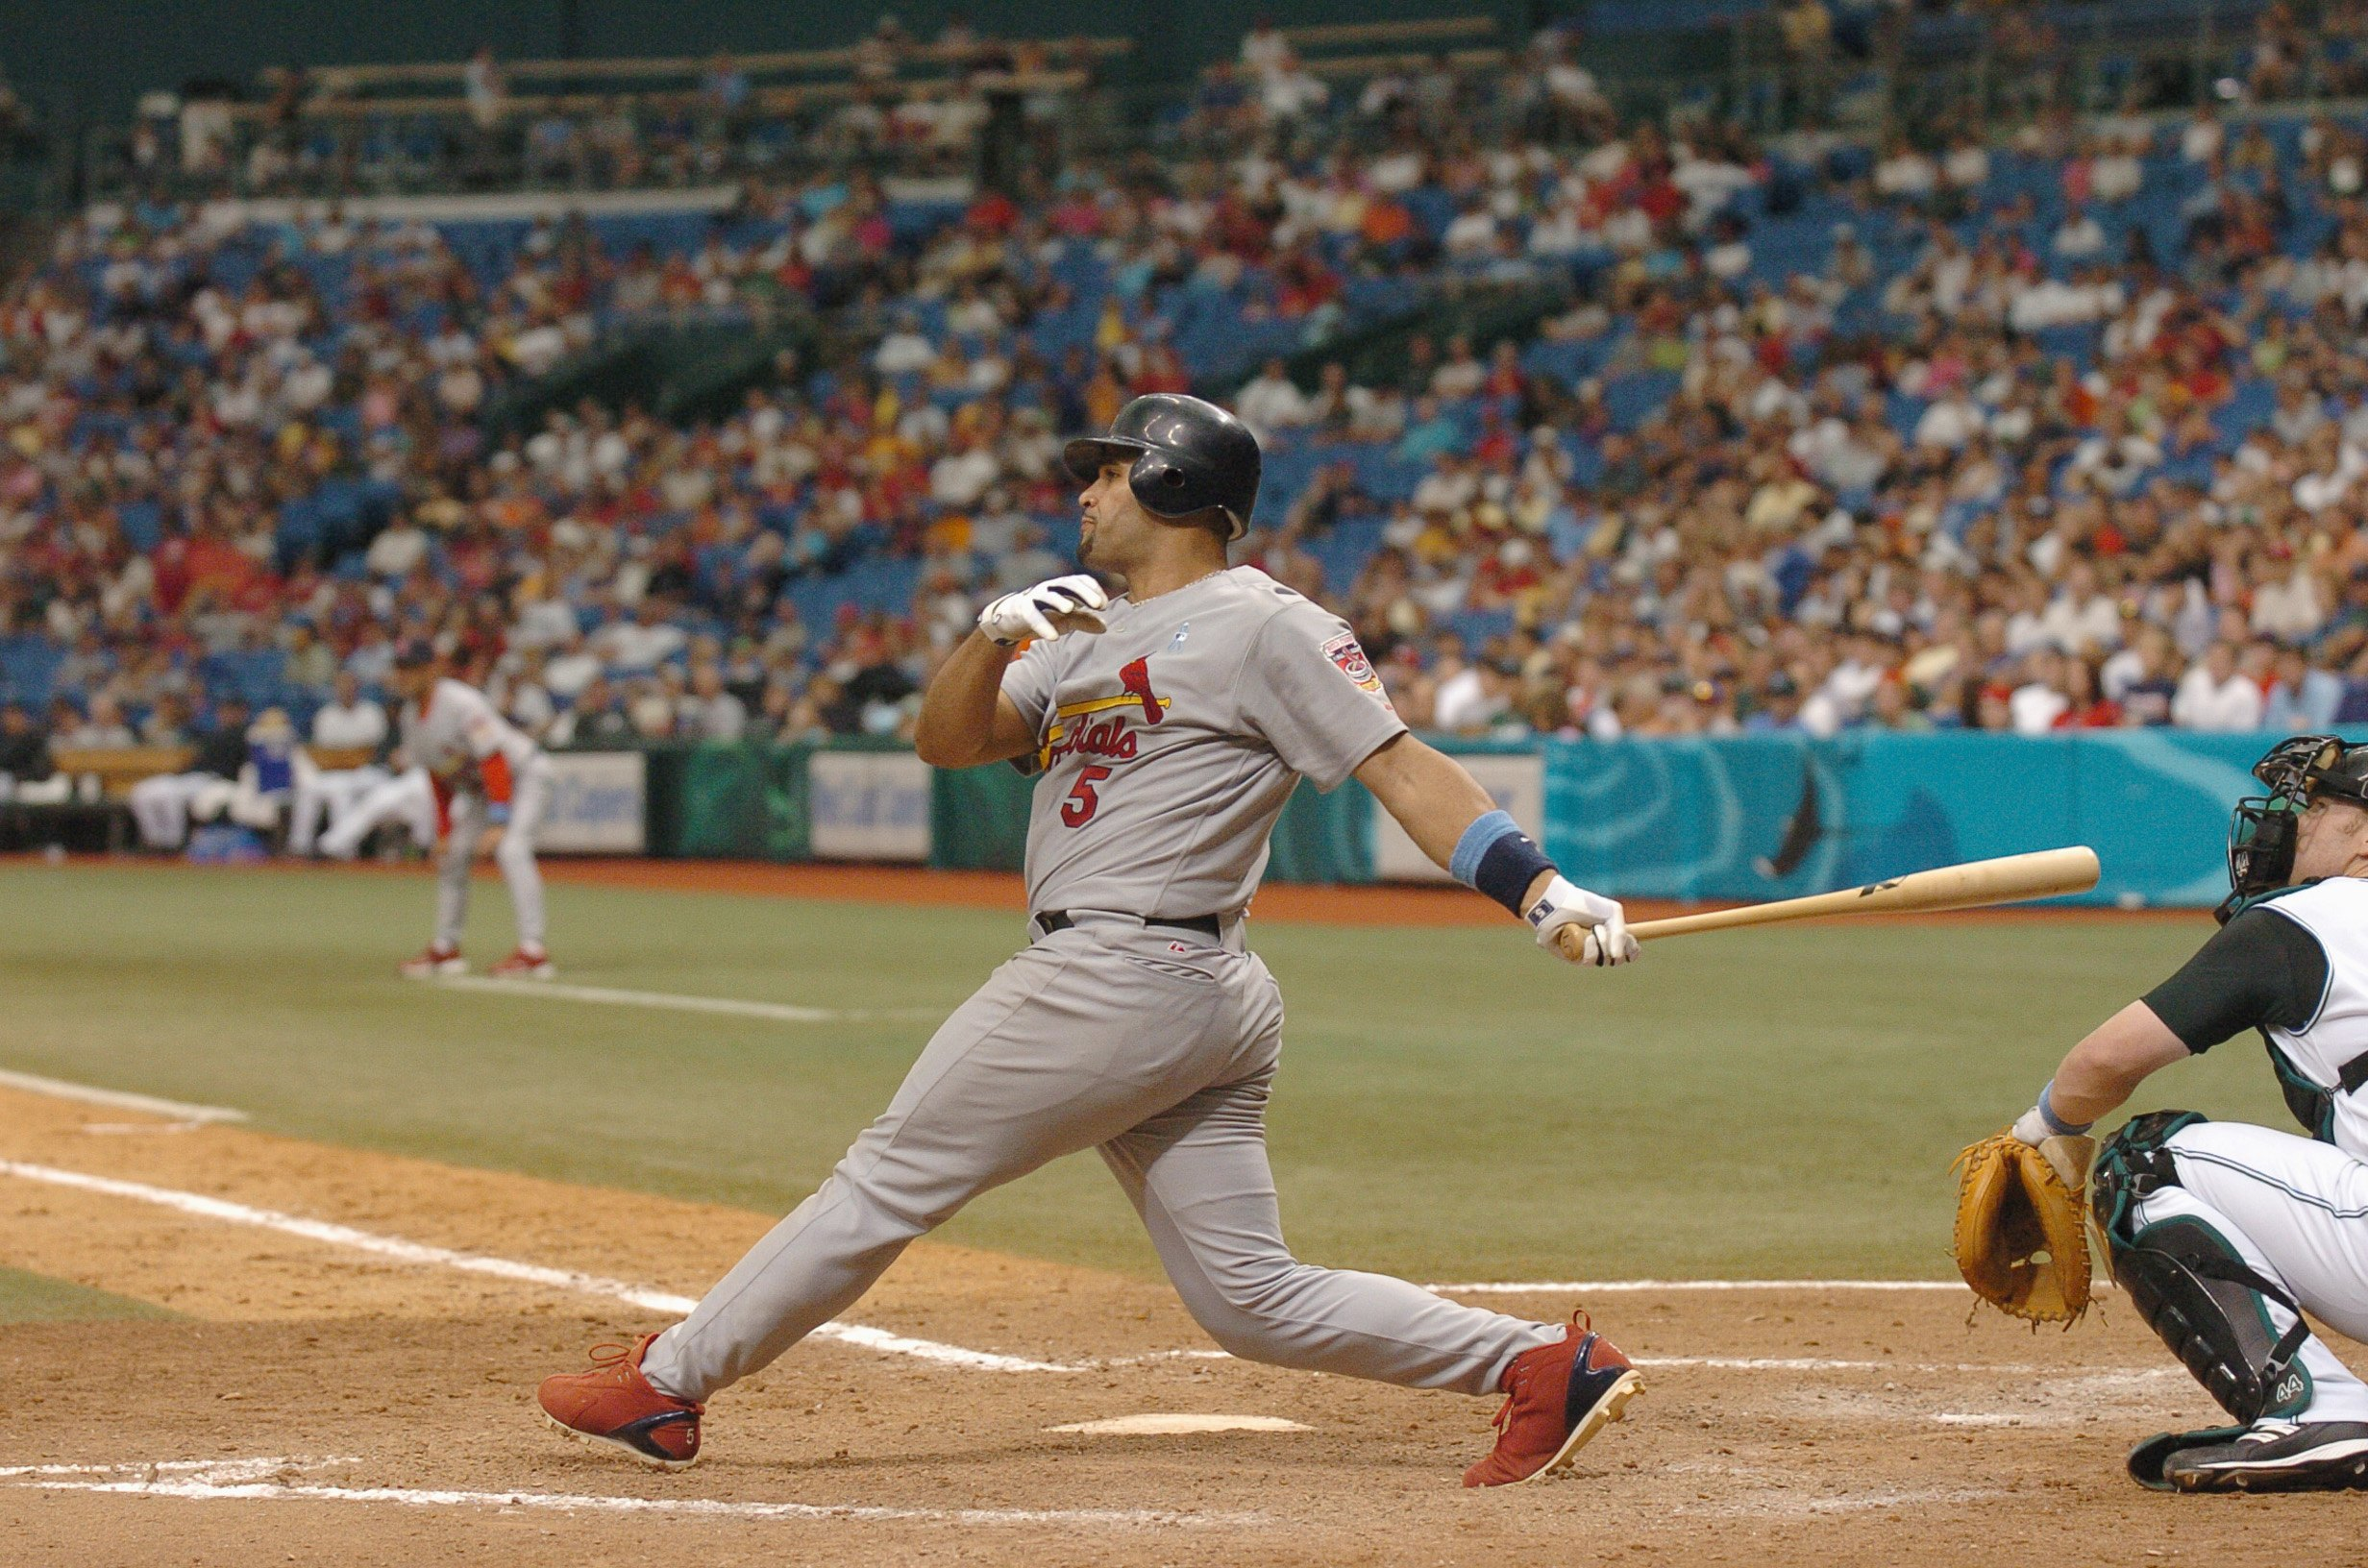 ST. PETERSBURGH, FLORIDA - JUNE 19:  Albert Pujols #5 of the St. Louis Cardinals swings at the pitch during the game against the Tampa Bay Devil Rays at Tampa Bay Devil Rays Stadium on June 19,2005 in St. Petersburg, Florida. (Photo by: Steve Kovich/Getty